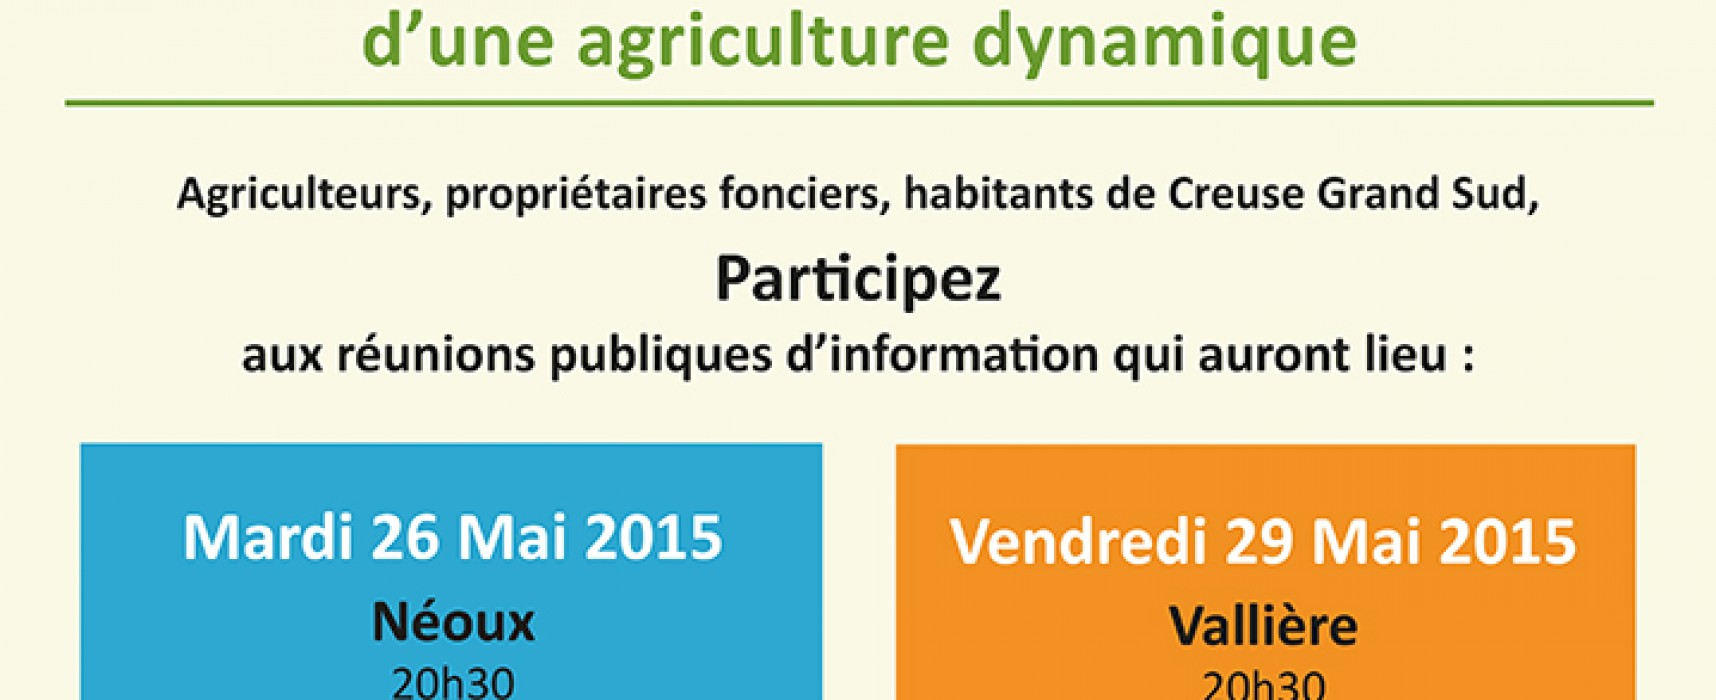 Diagnostic du foncier agricole